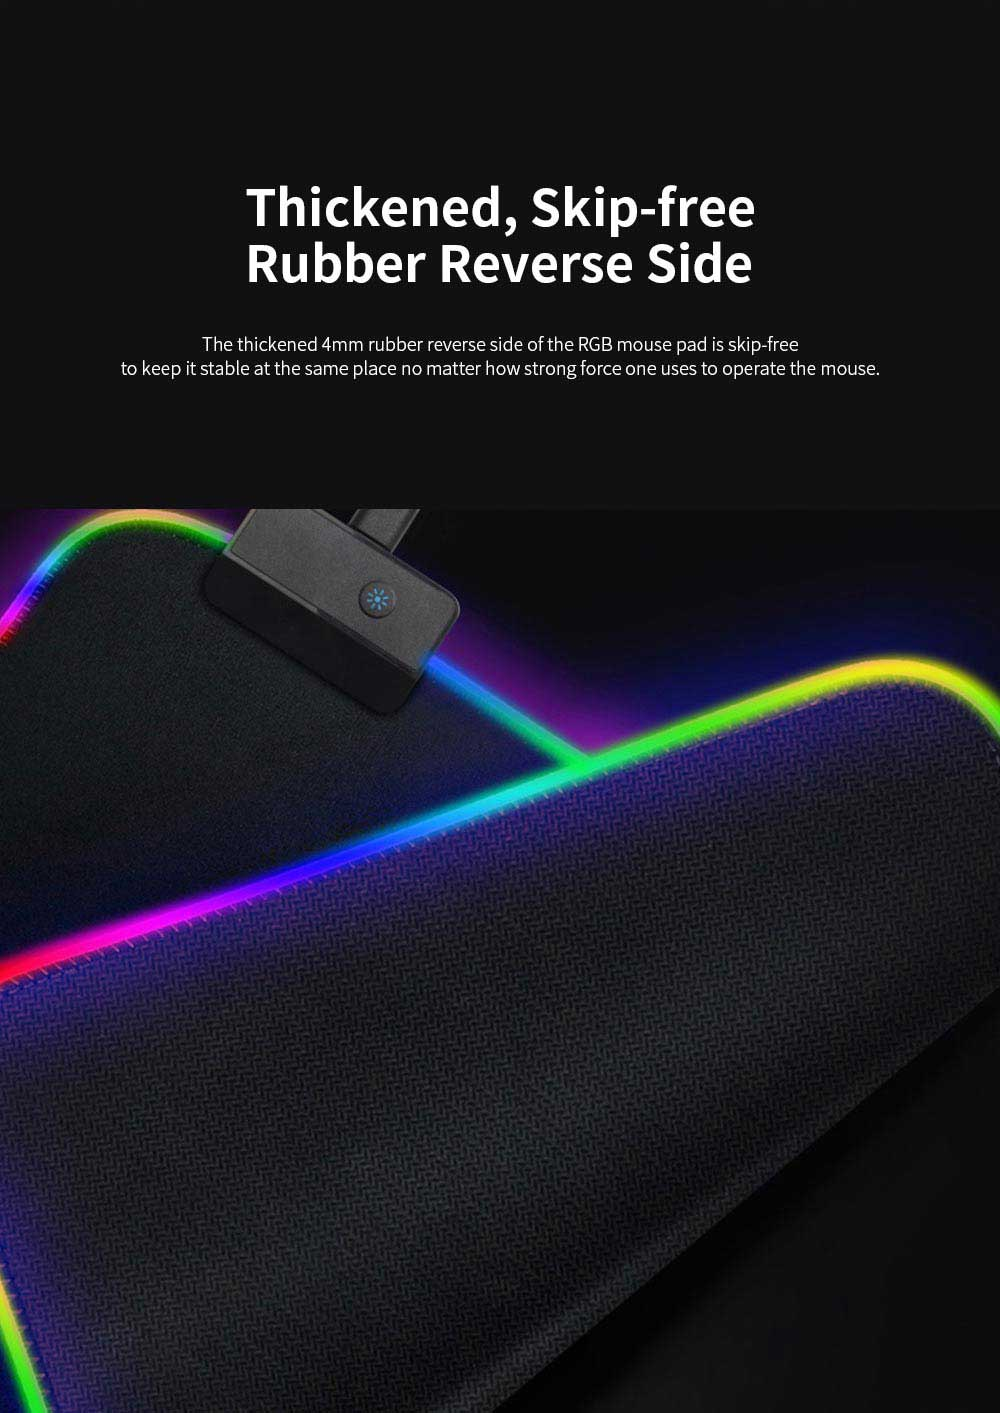 RGB Mouse Pad with Light Stripe Fine Textured and Thickened Skip-free Rubber Reverse Side Mouse Mat Computer Accessory Mousepad 2